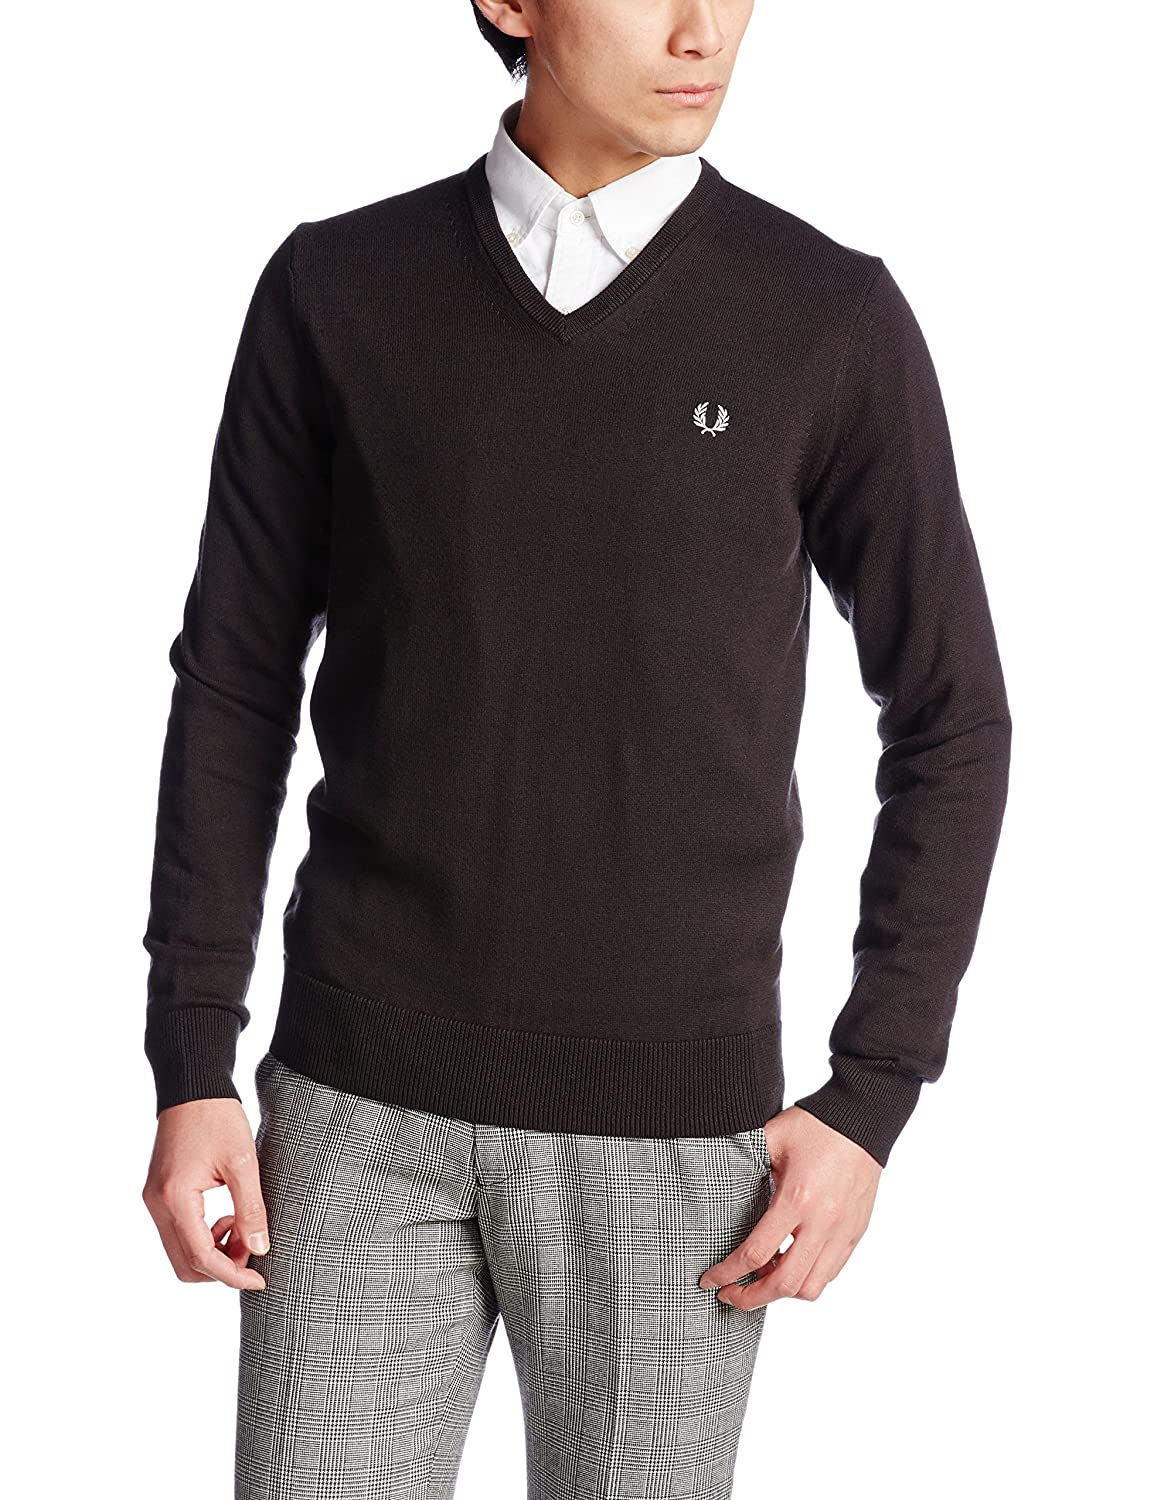 Amazon.co.jp: (フレッドペリー)FRED PERRY CLASSIC TIPPED V NECK SWEATER: 服&ファッション小物通販